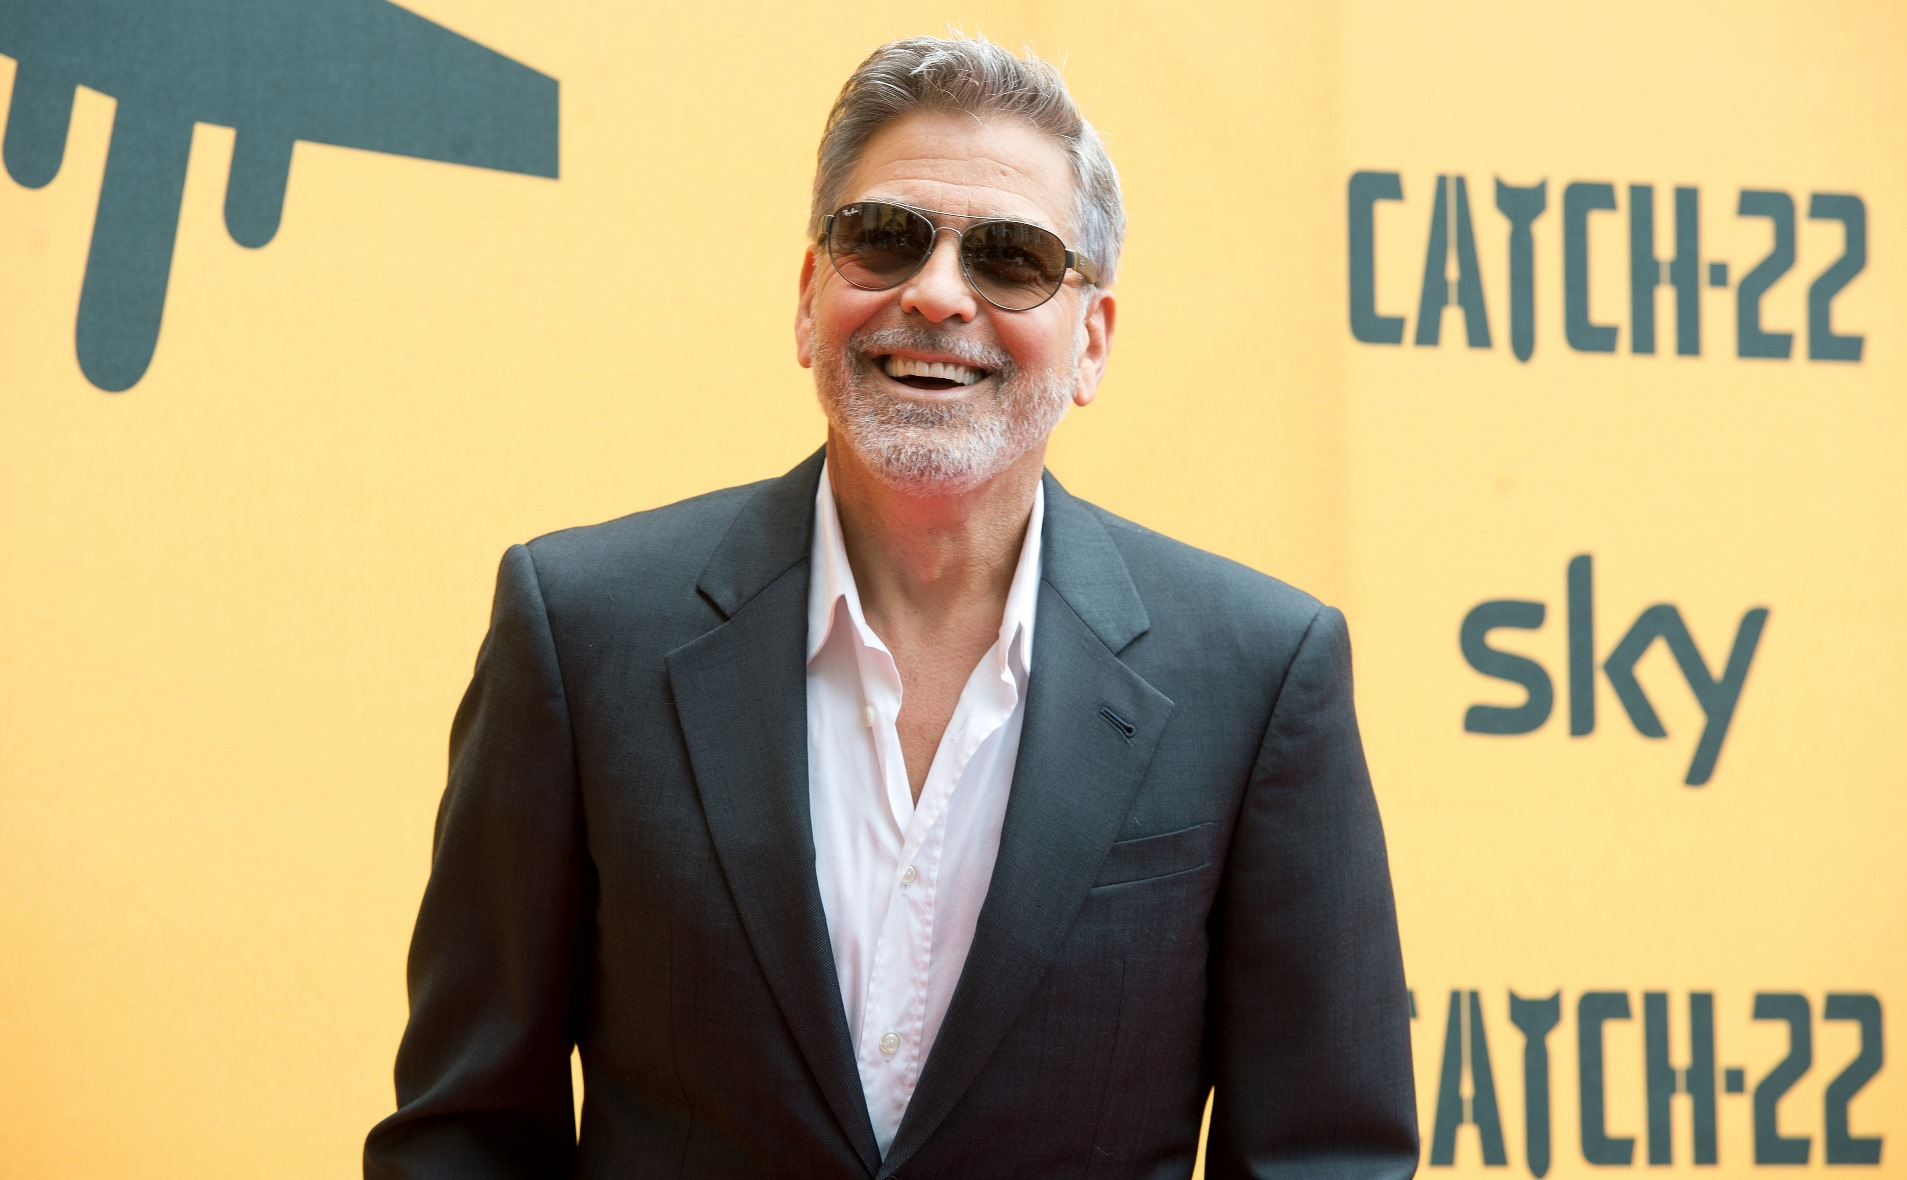 Catch-22: una foto di George Clooney durante la premiere europea a Roma presso il The Space Cinema Moderno